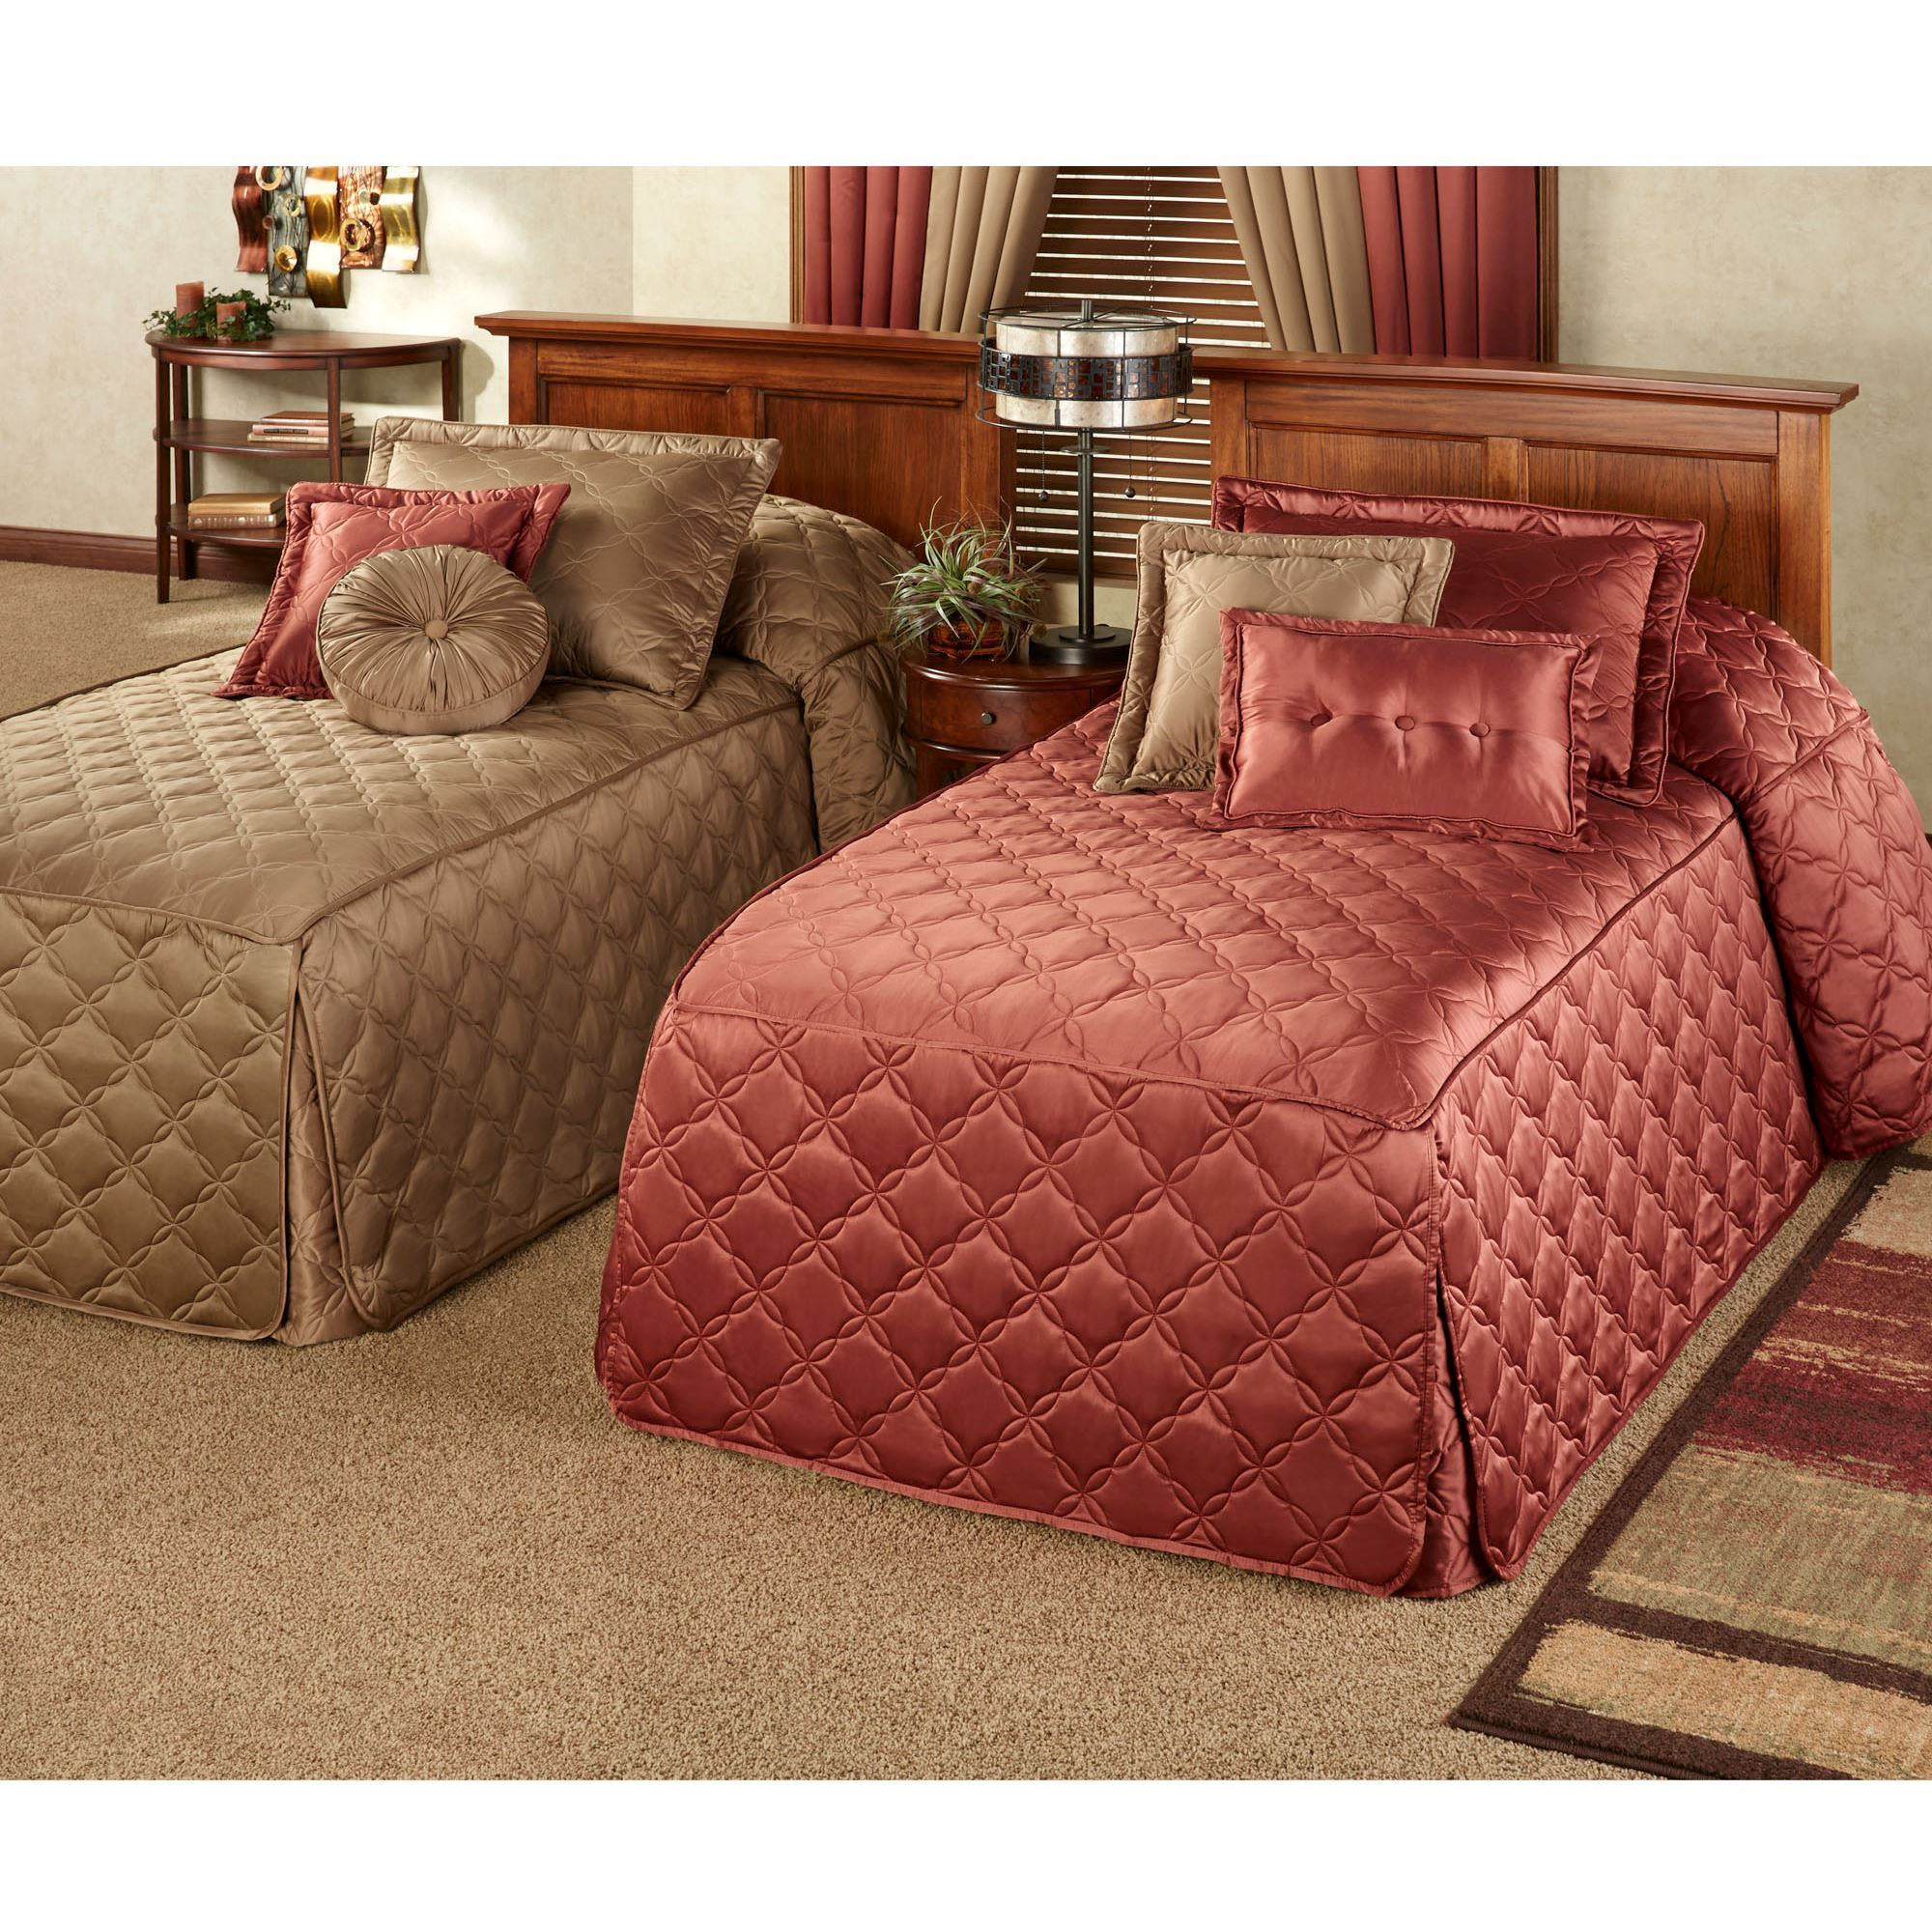 Color Classics(R) Quilted Fitted Bedspreads : fitted quilted bedspreads - Adamdwight.com